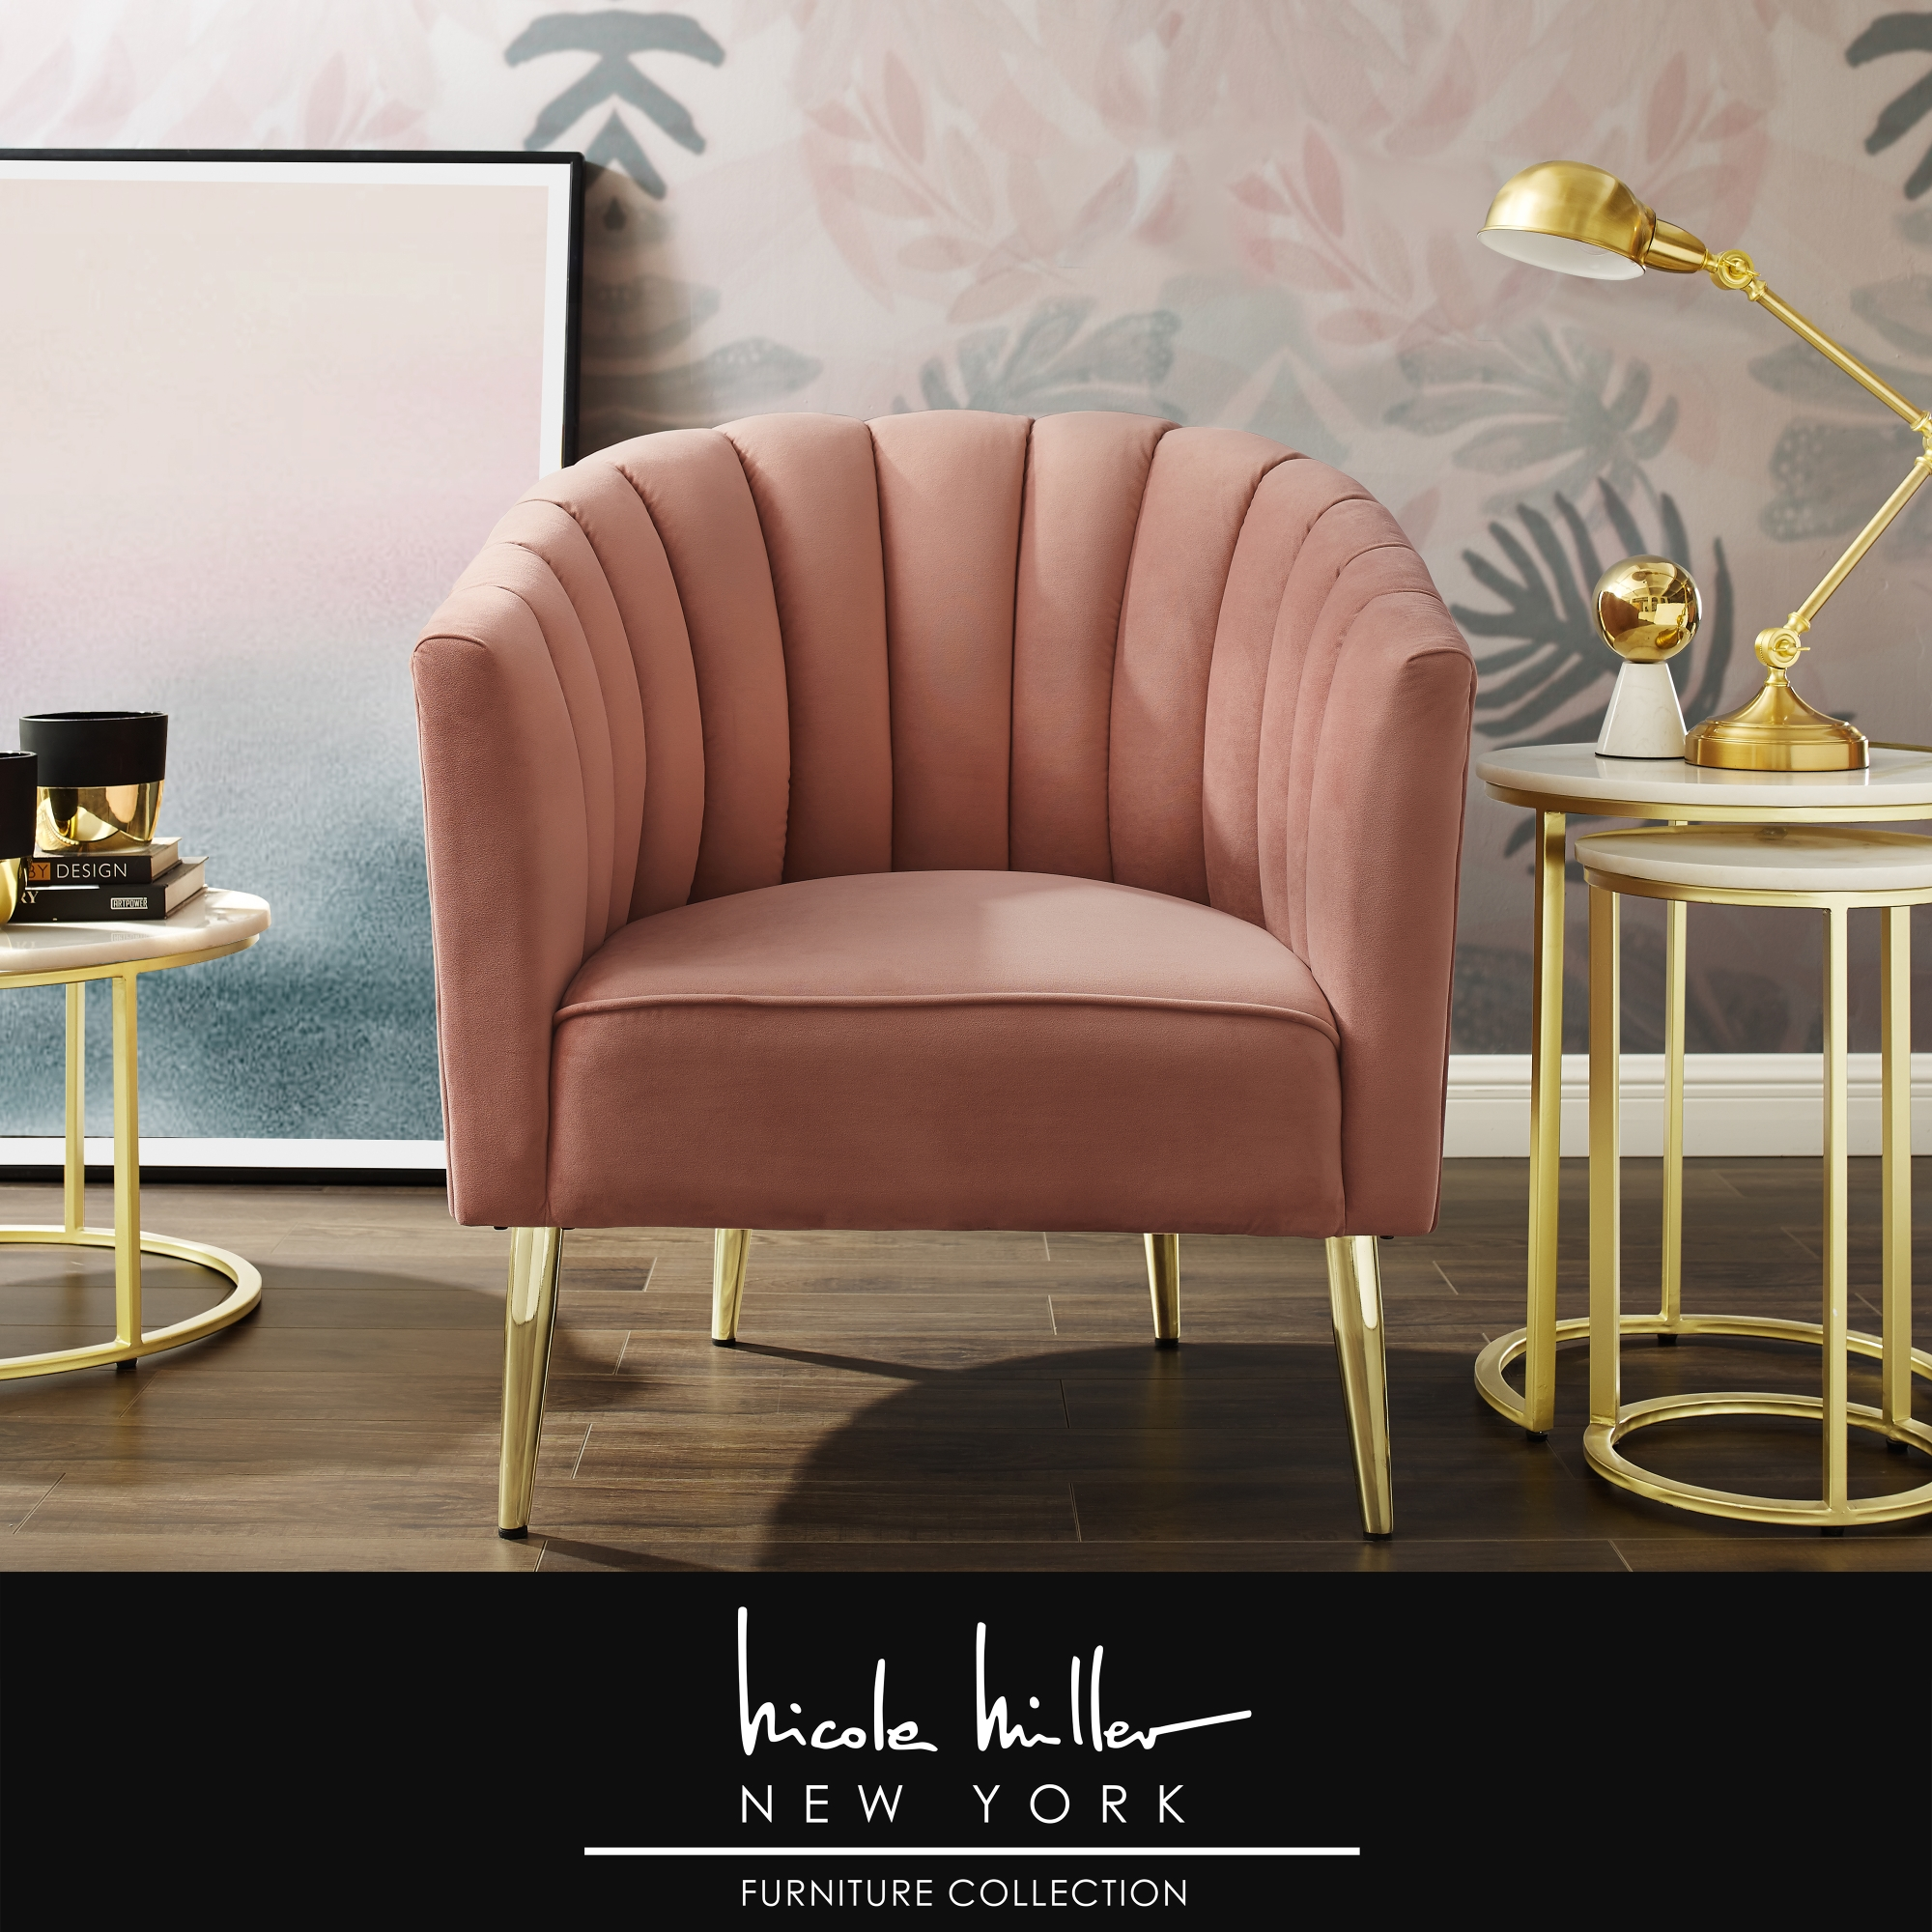 Nicole Miller Blush/Gold Velvet Accent Chair Upholstered Barrel Chair Channel Tufted Back and Rolled Arm